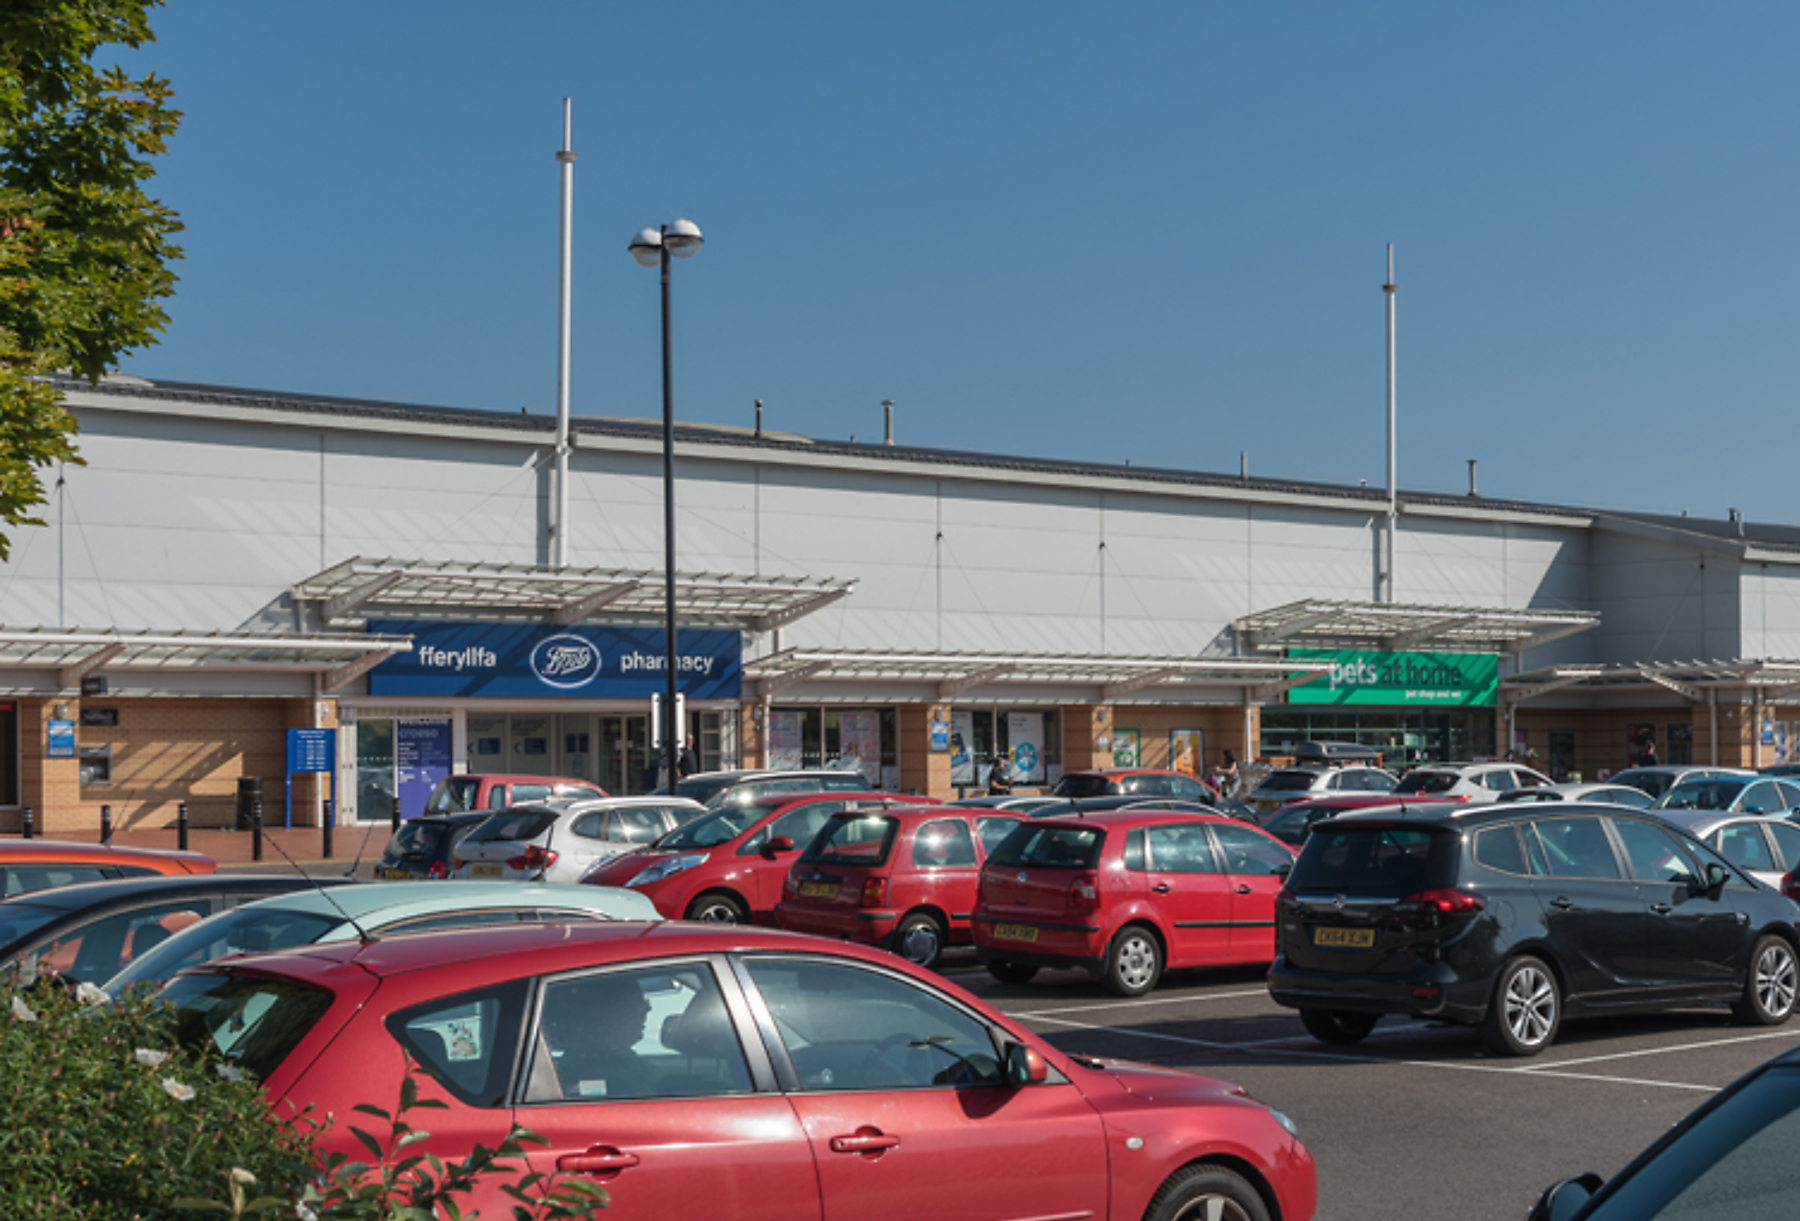 CR_RW_2295_Cardiff_Bay_Retail_Park_Cardiff_picture_9_p8_1800x1440